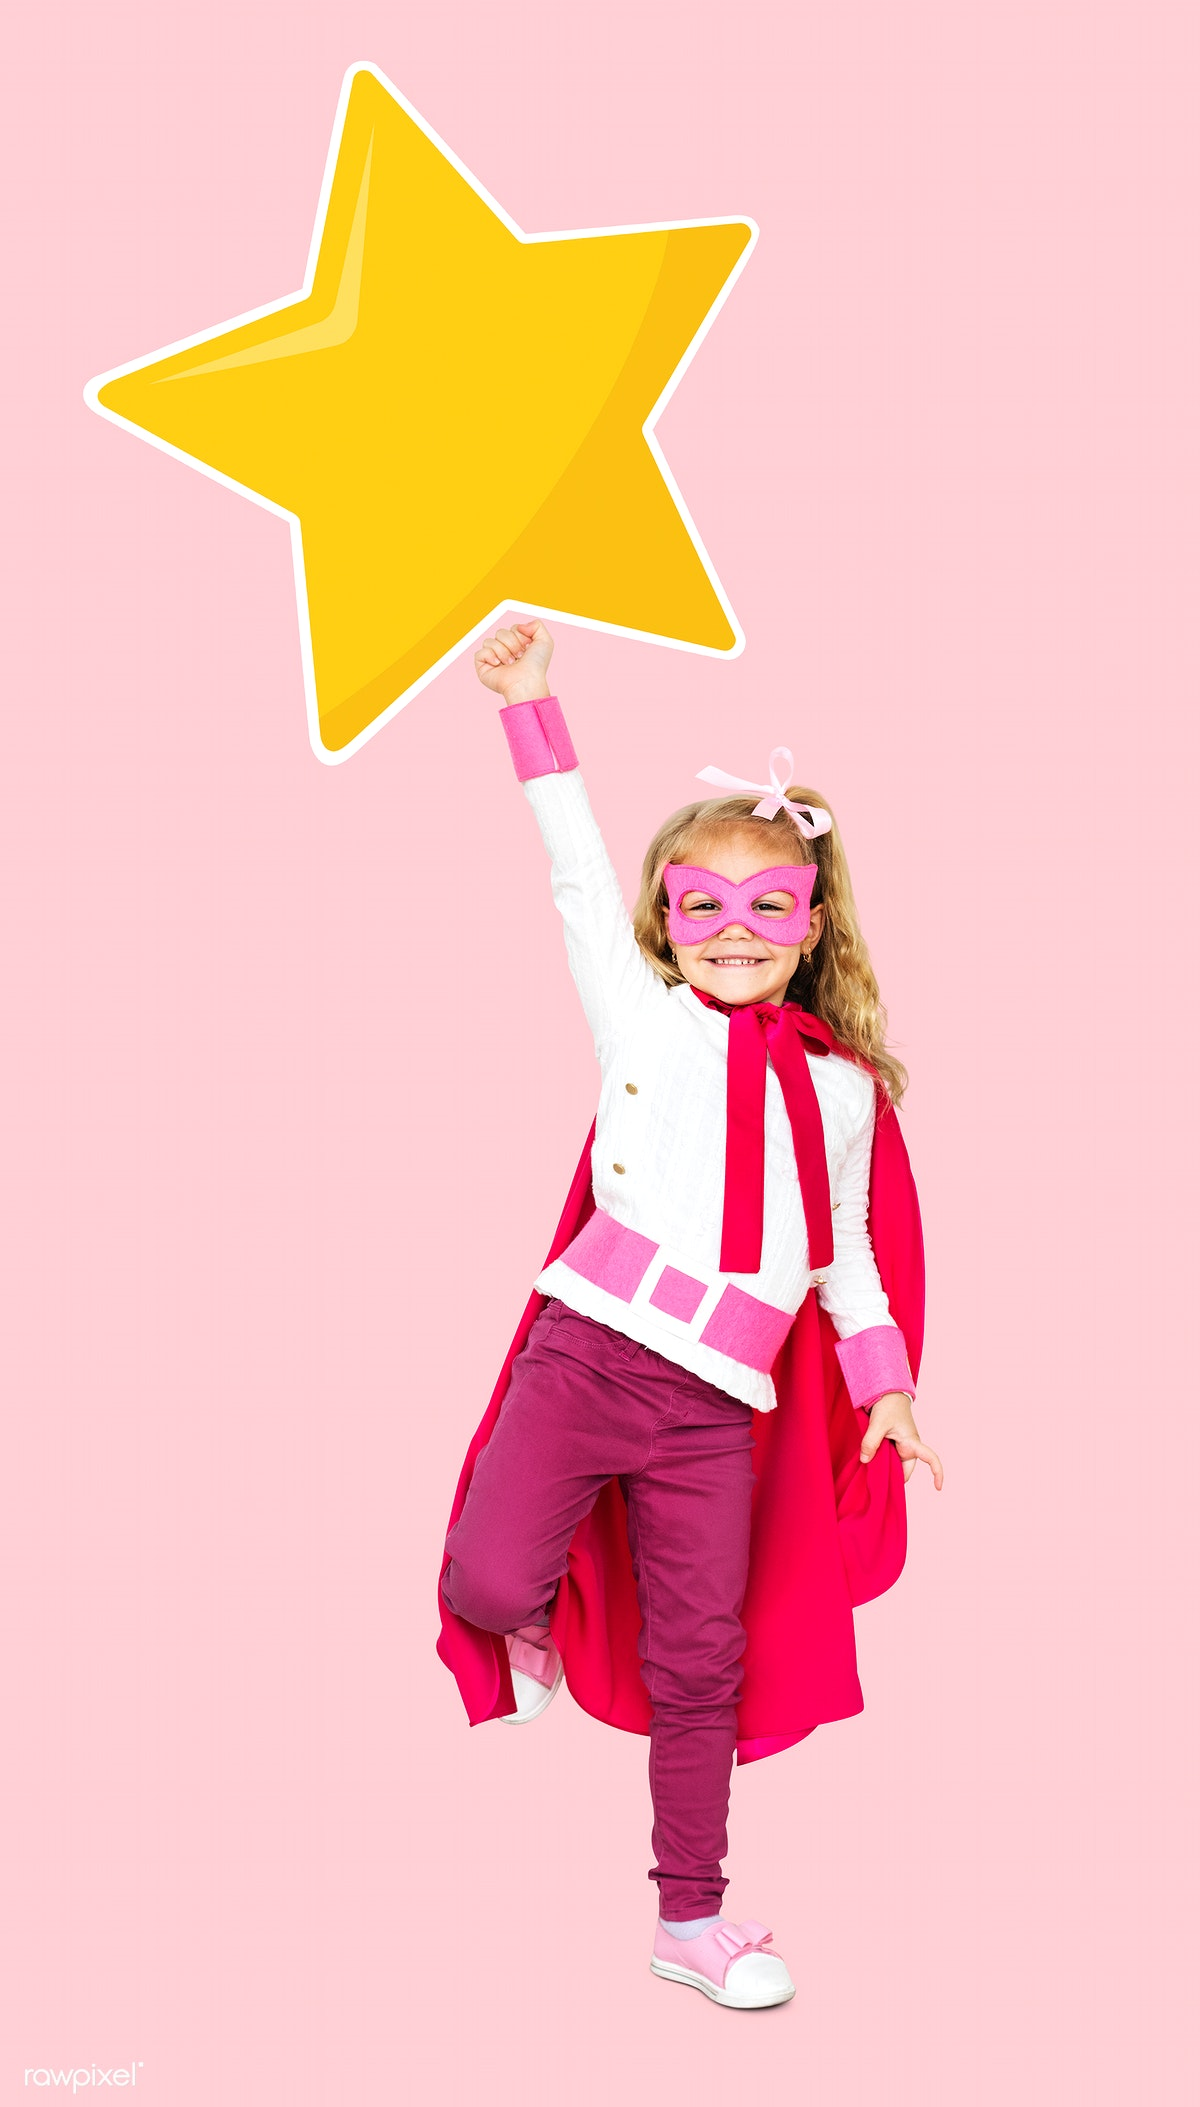 Superhero with a golden star | Free stock photo - 504176